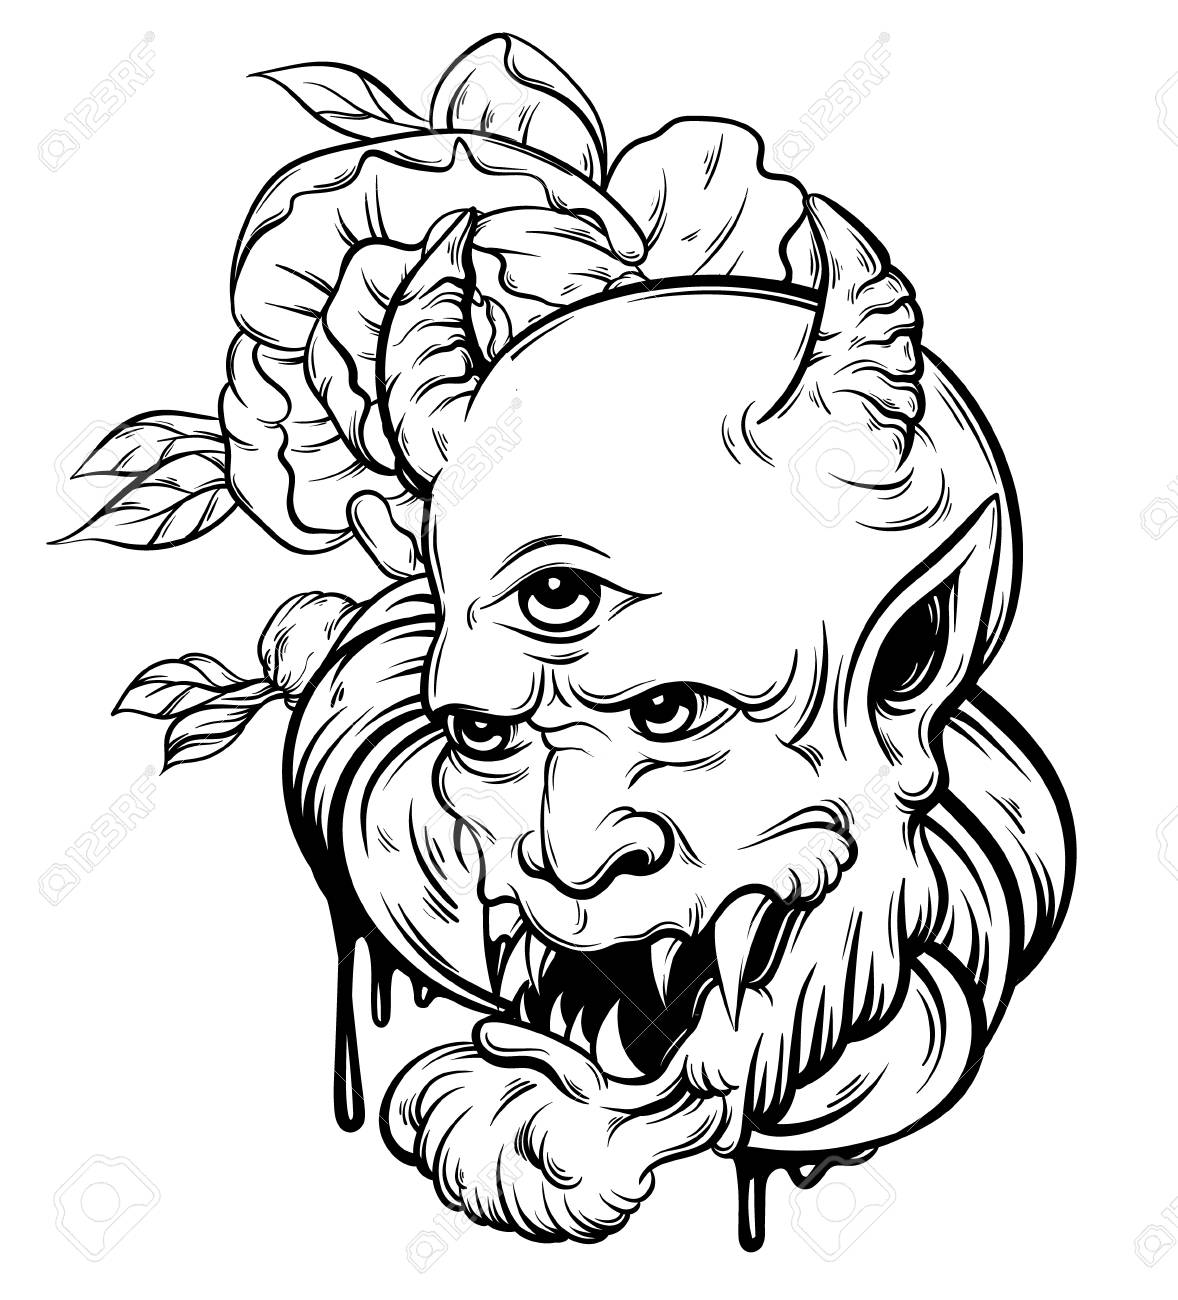 bef58d54 Vector - Vector hand drawn illustration of devil. Tattoo hand sketched  artwork with realistic flowers. Template for card, poster, banner, print  for t-shirt.